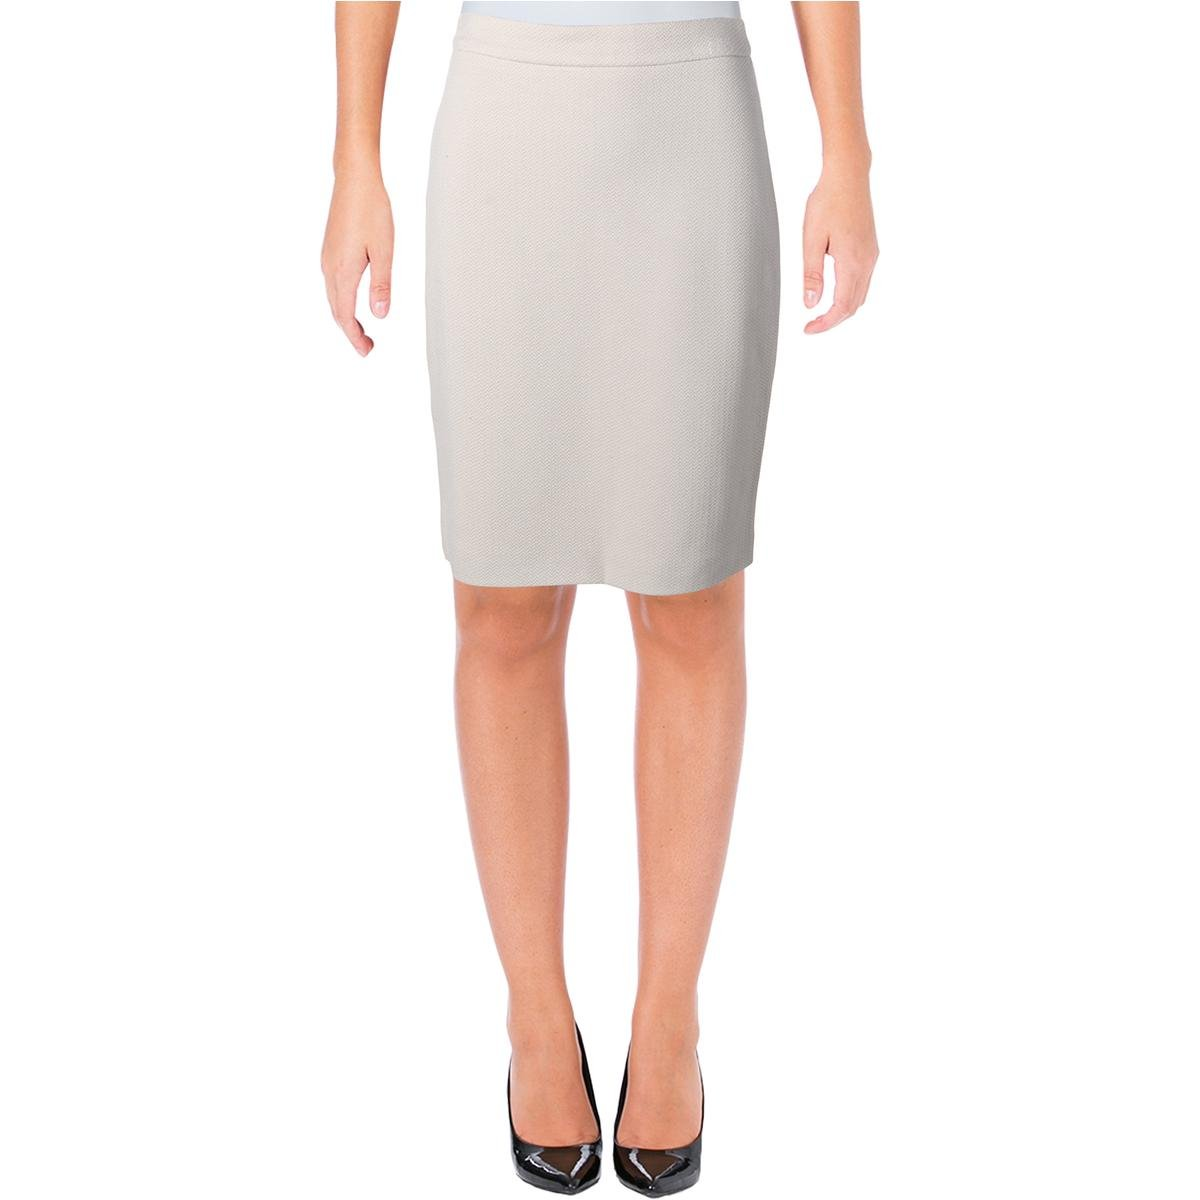 Hugo Boss BOSS Womens Herringbone Lined Pencil Skirt Tan 4 by Hugo Boss